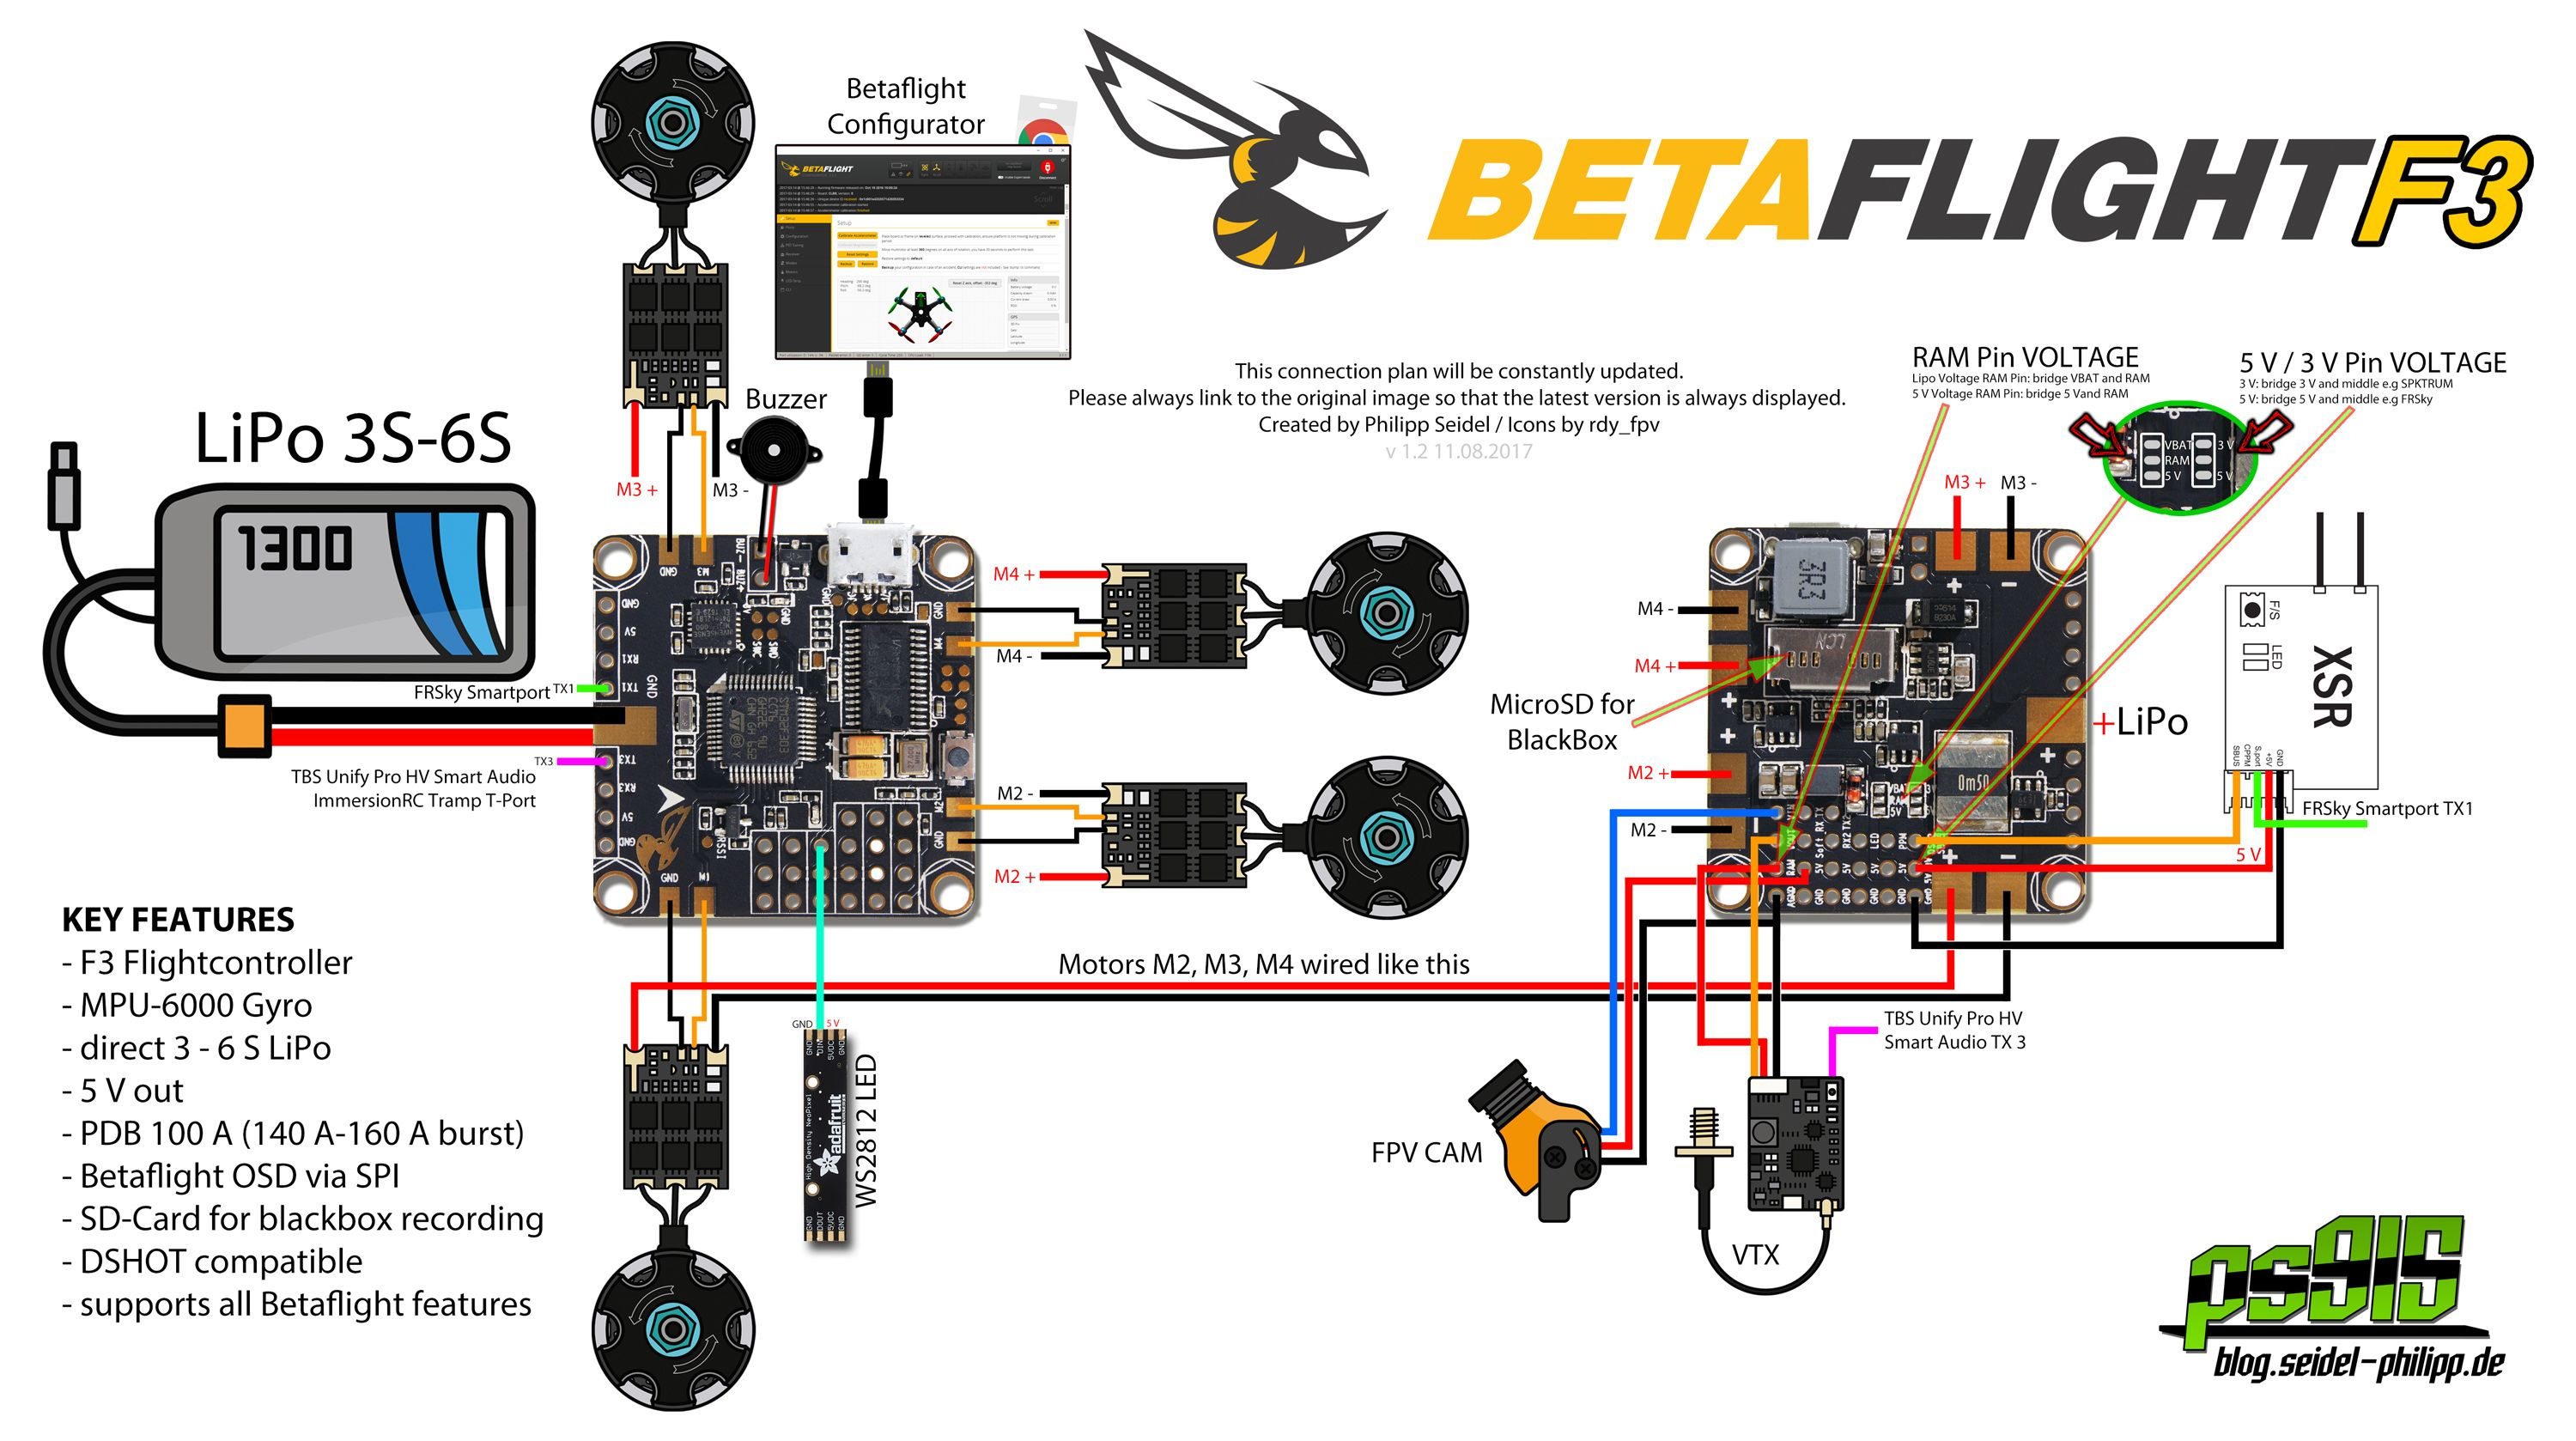 Betaflight F3 Flight Controller Anschlussplan Wiringplan Wiring. Betaflight F3 Flight Controller Anschlussplan Wiringplan Drone Quadcopter Pilot Top Rated. Wiring. Wiring Diagram E Machine Fpv250 Drone At Scoala.co